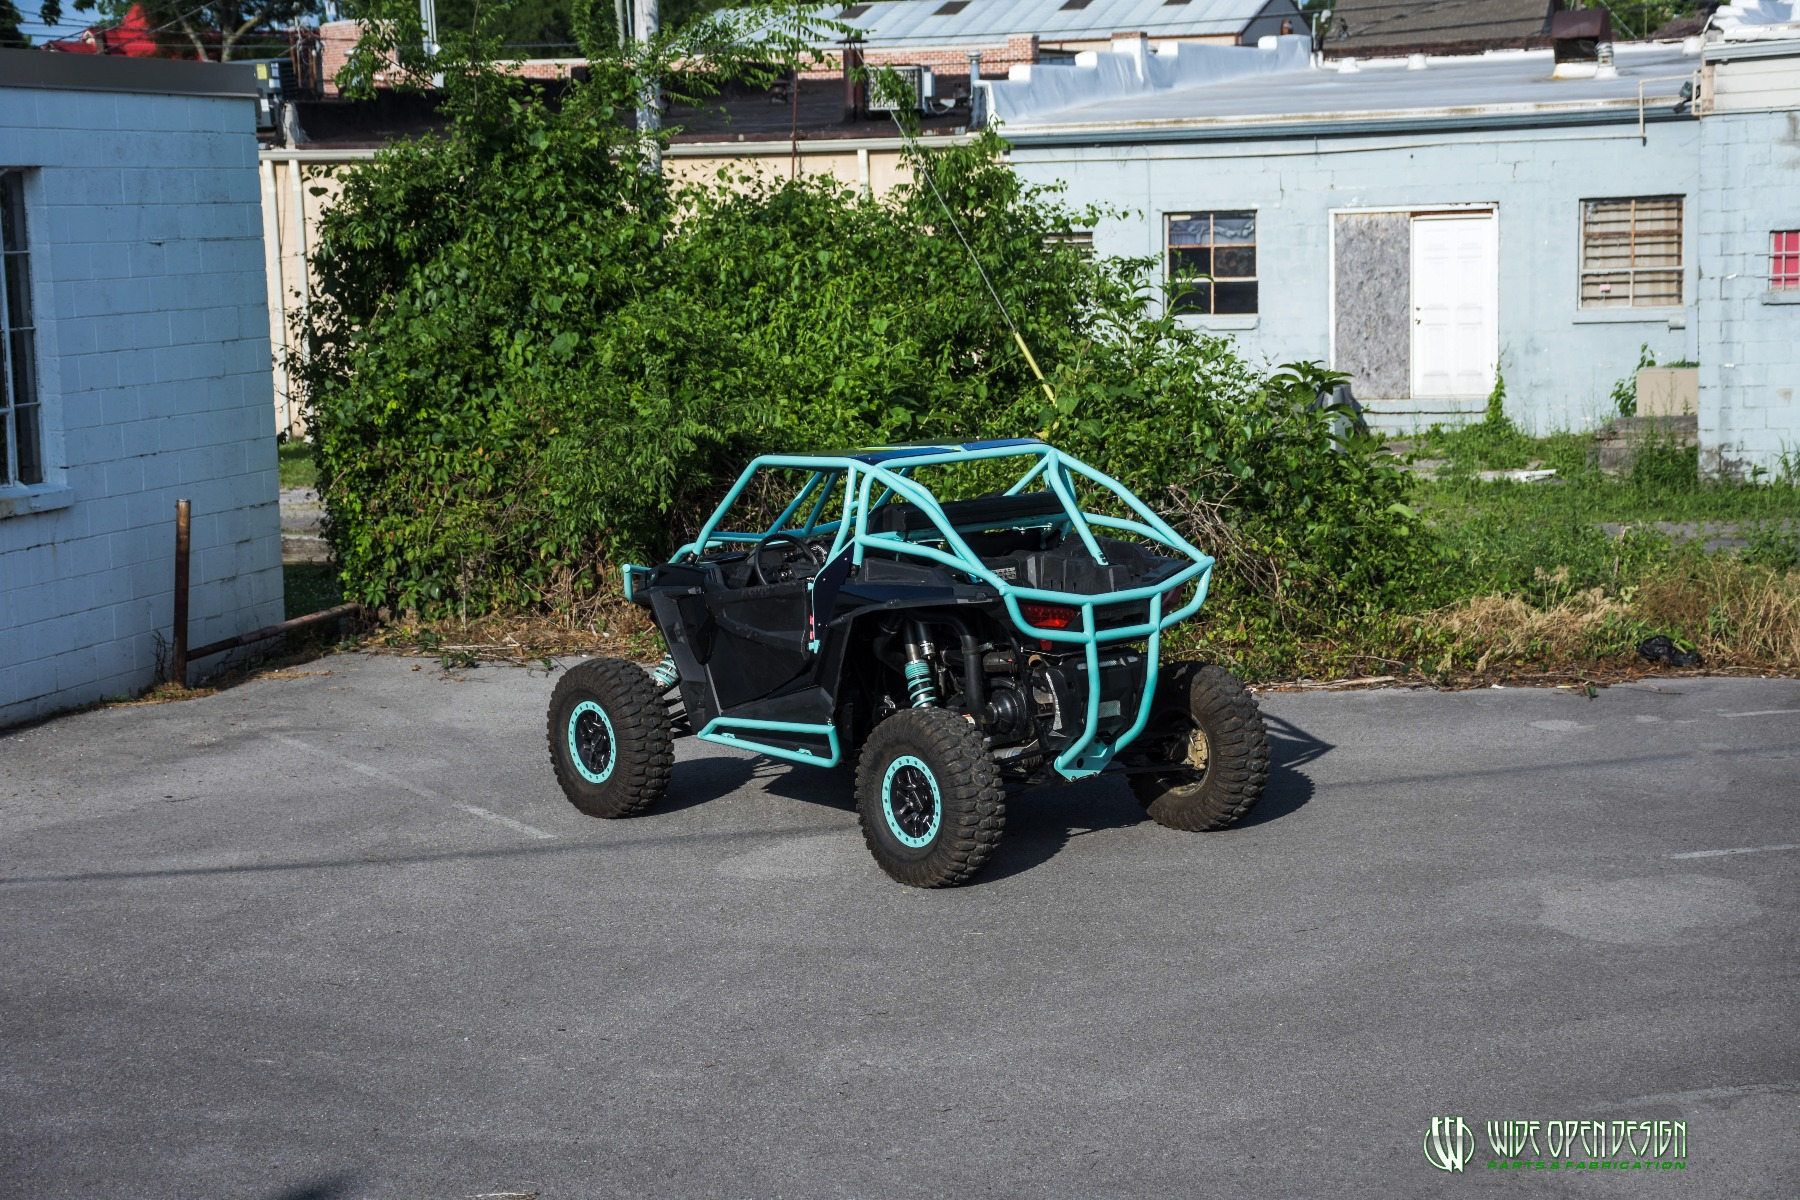 Wide Open Design UTV Cage RZR Cage Double Down featuring Double Pillars 24